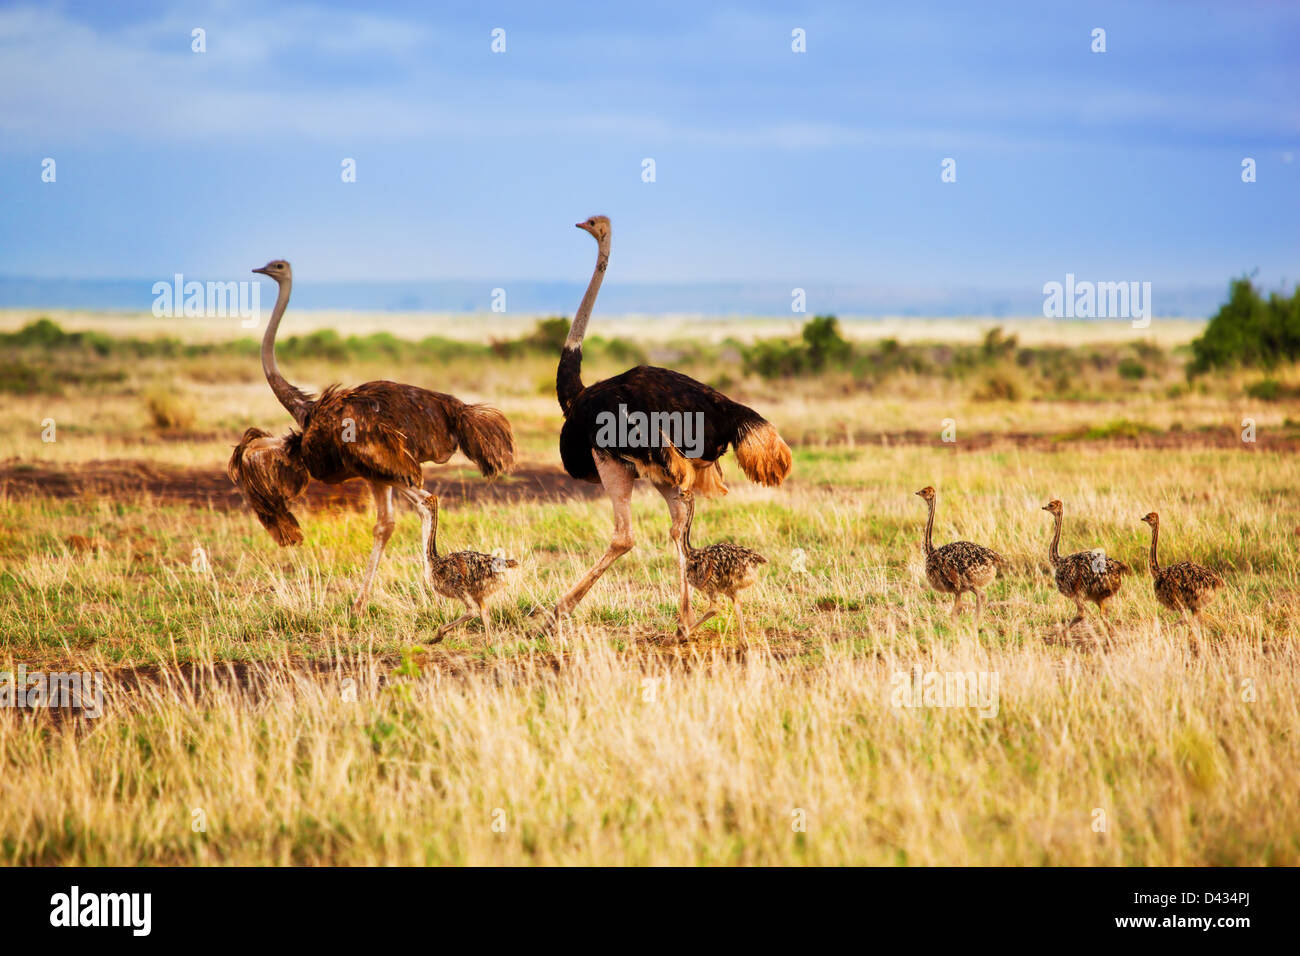 Ostrich family with baby ostriches walking on savanna in Africa. Safari in Amboseli, Kenya Stock Photo